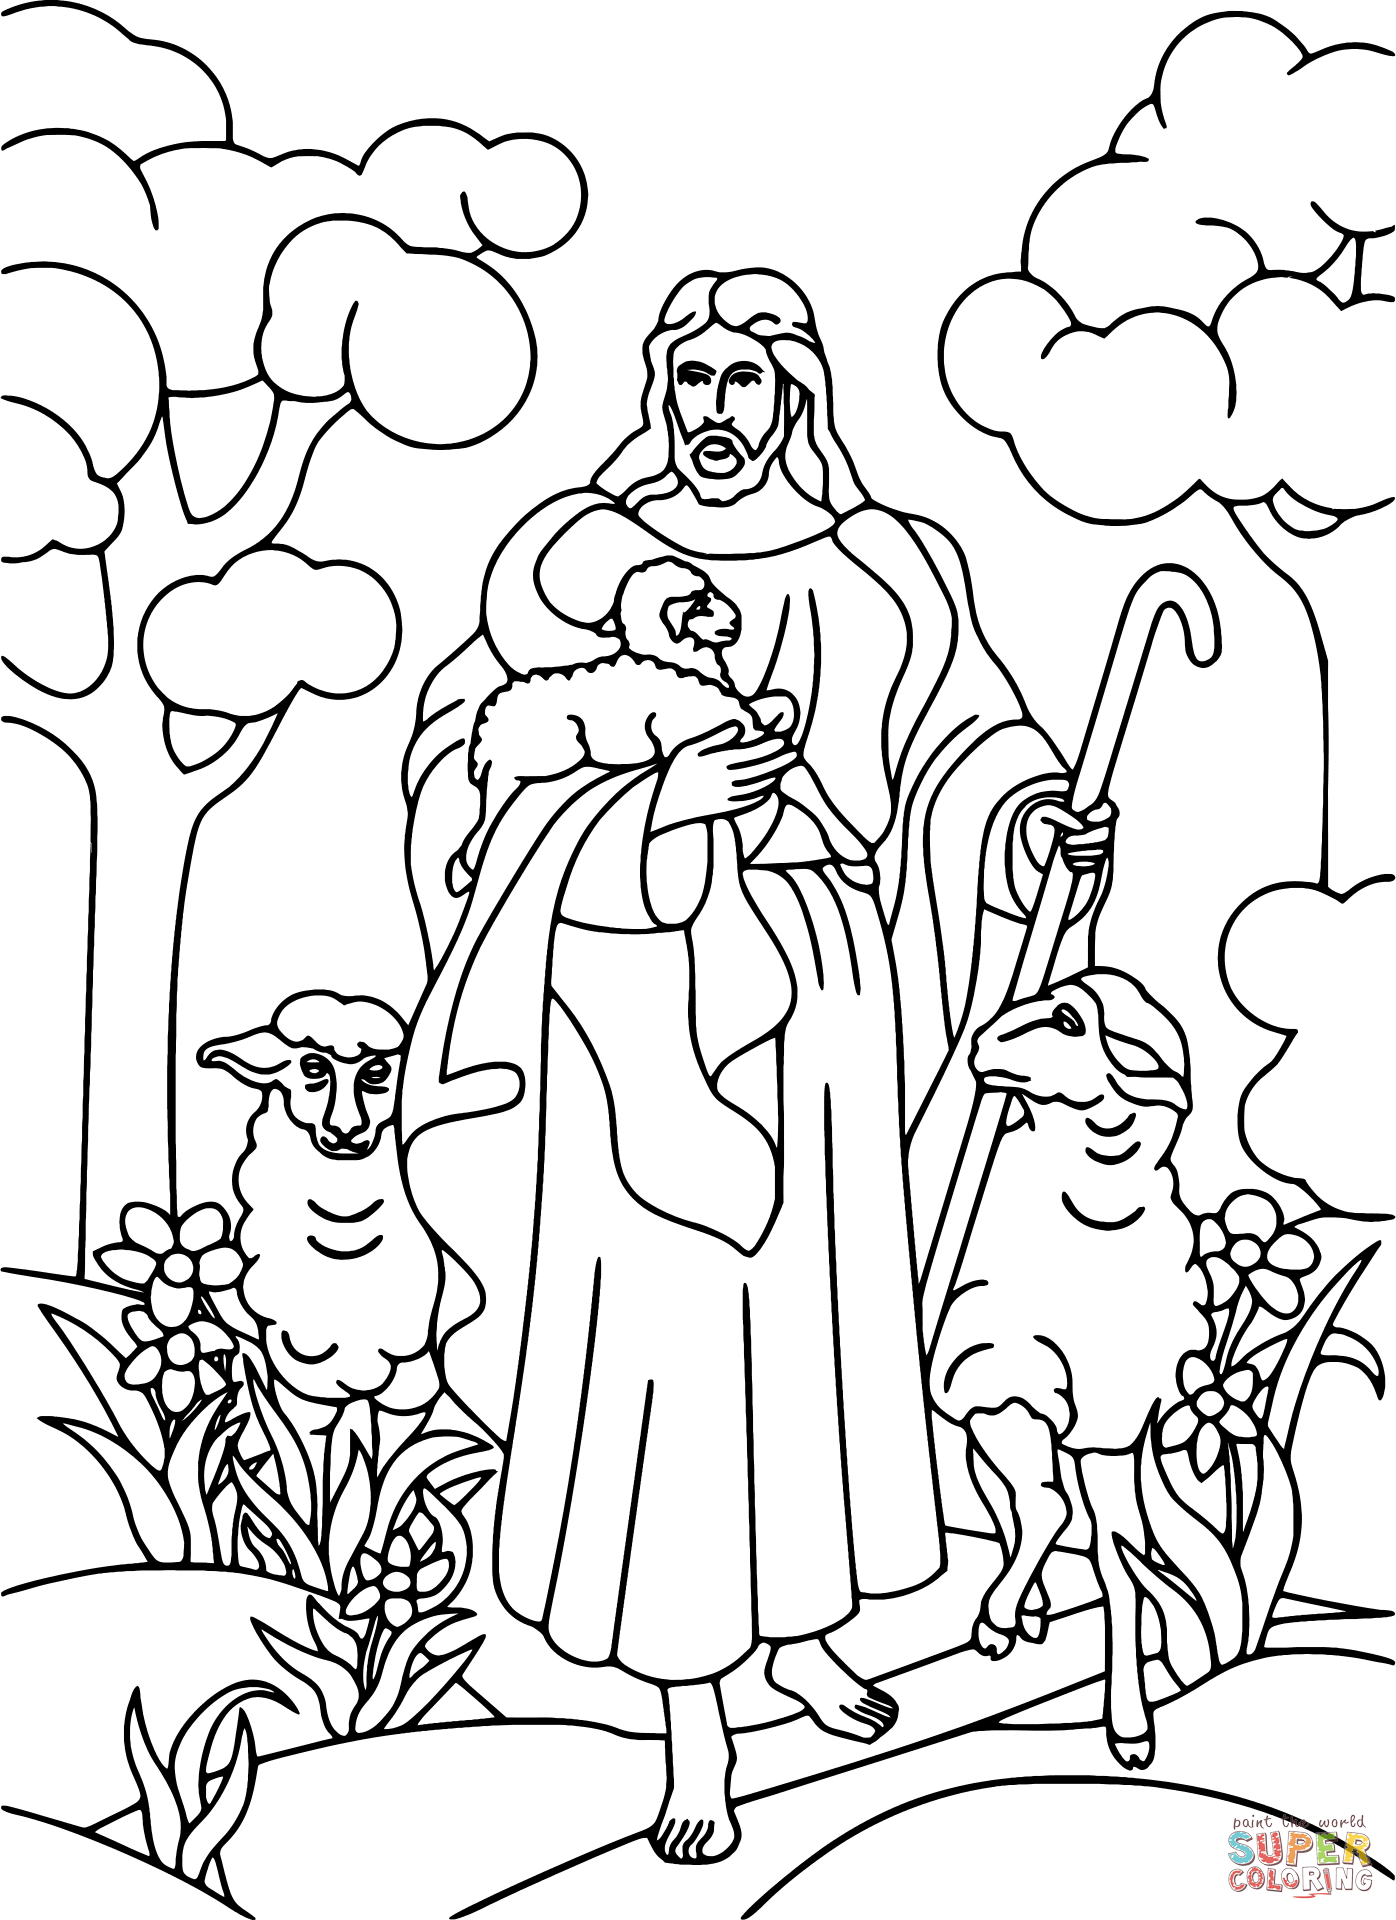 1236x1600 Jesus Healing The Sick 1396x1920 Holding Lamb Coloring Page Free Printable Pages